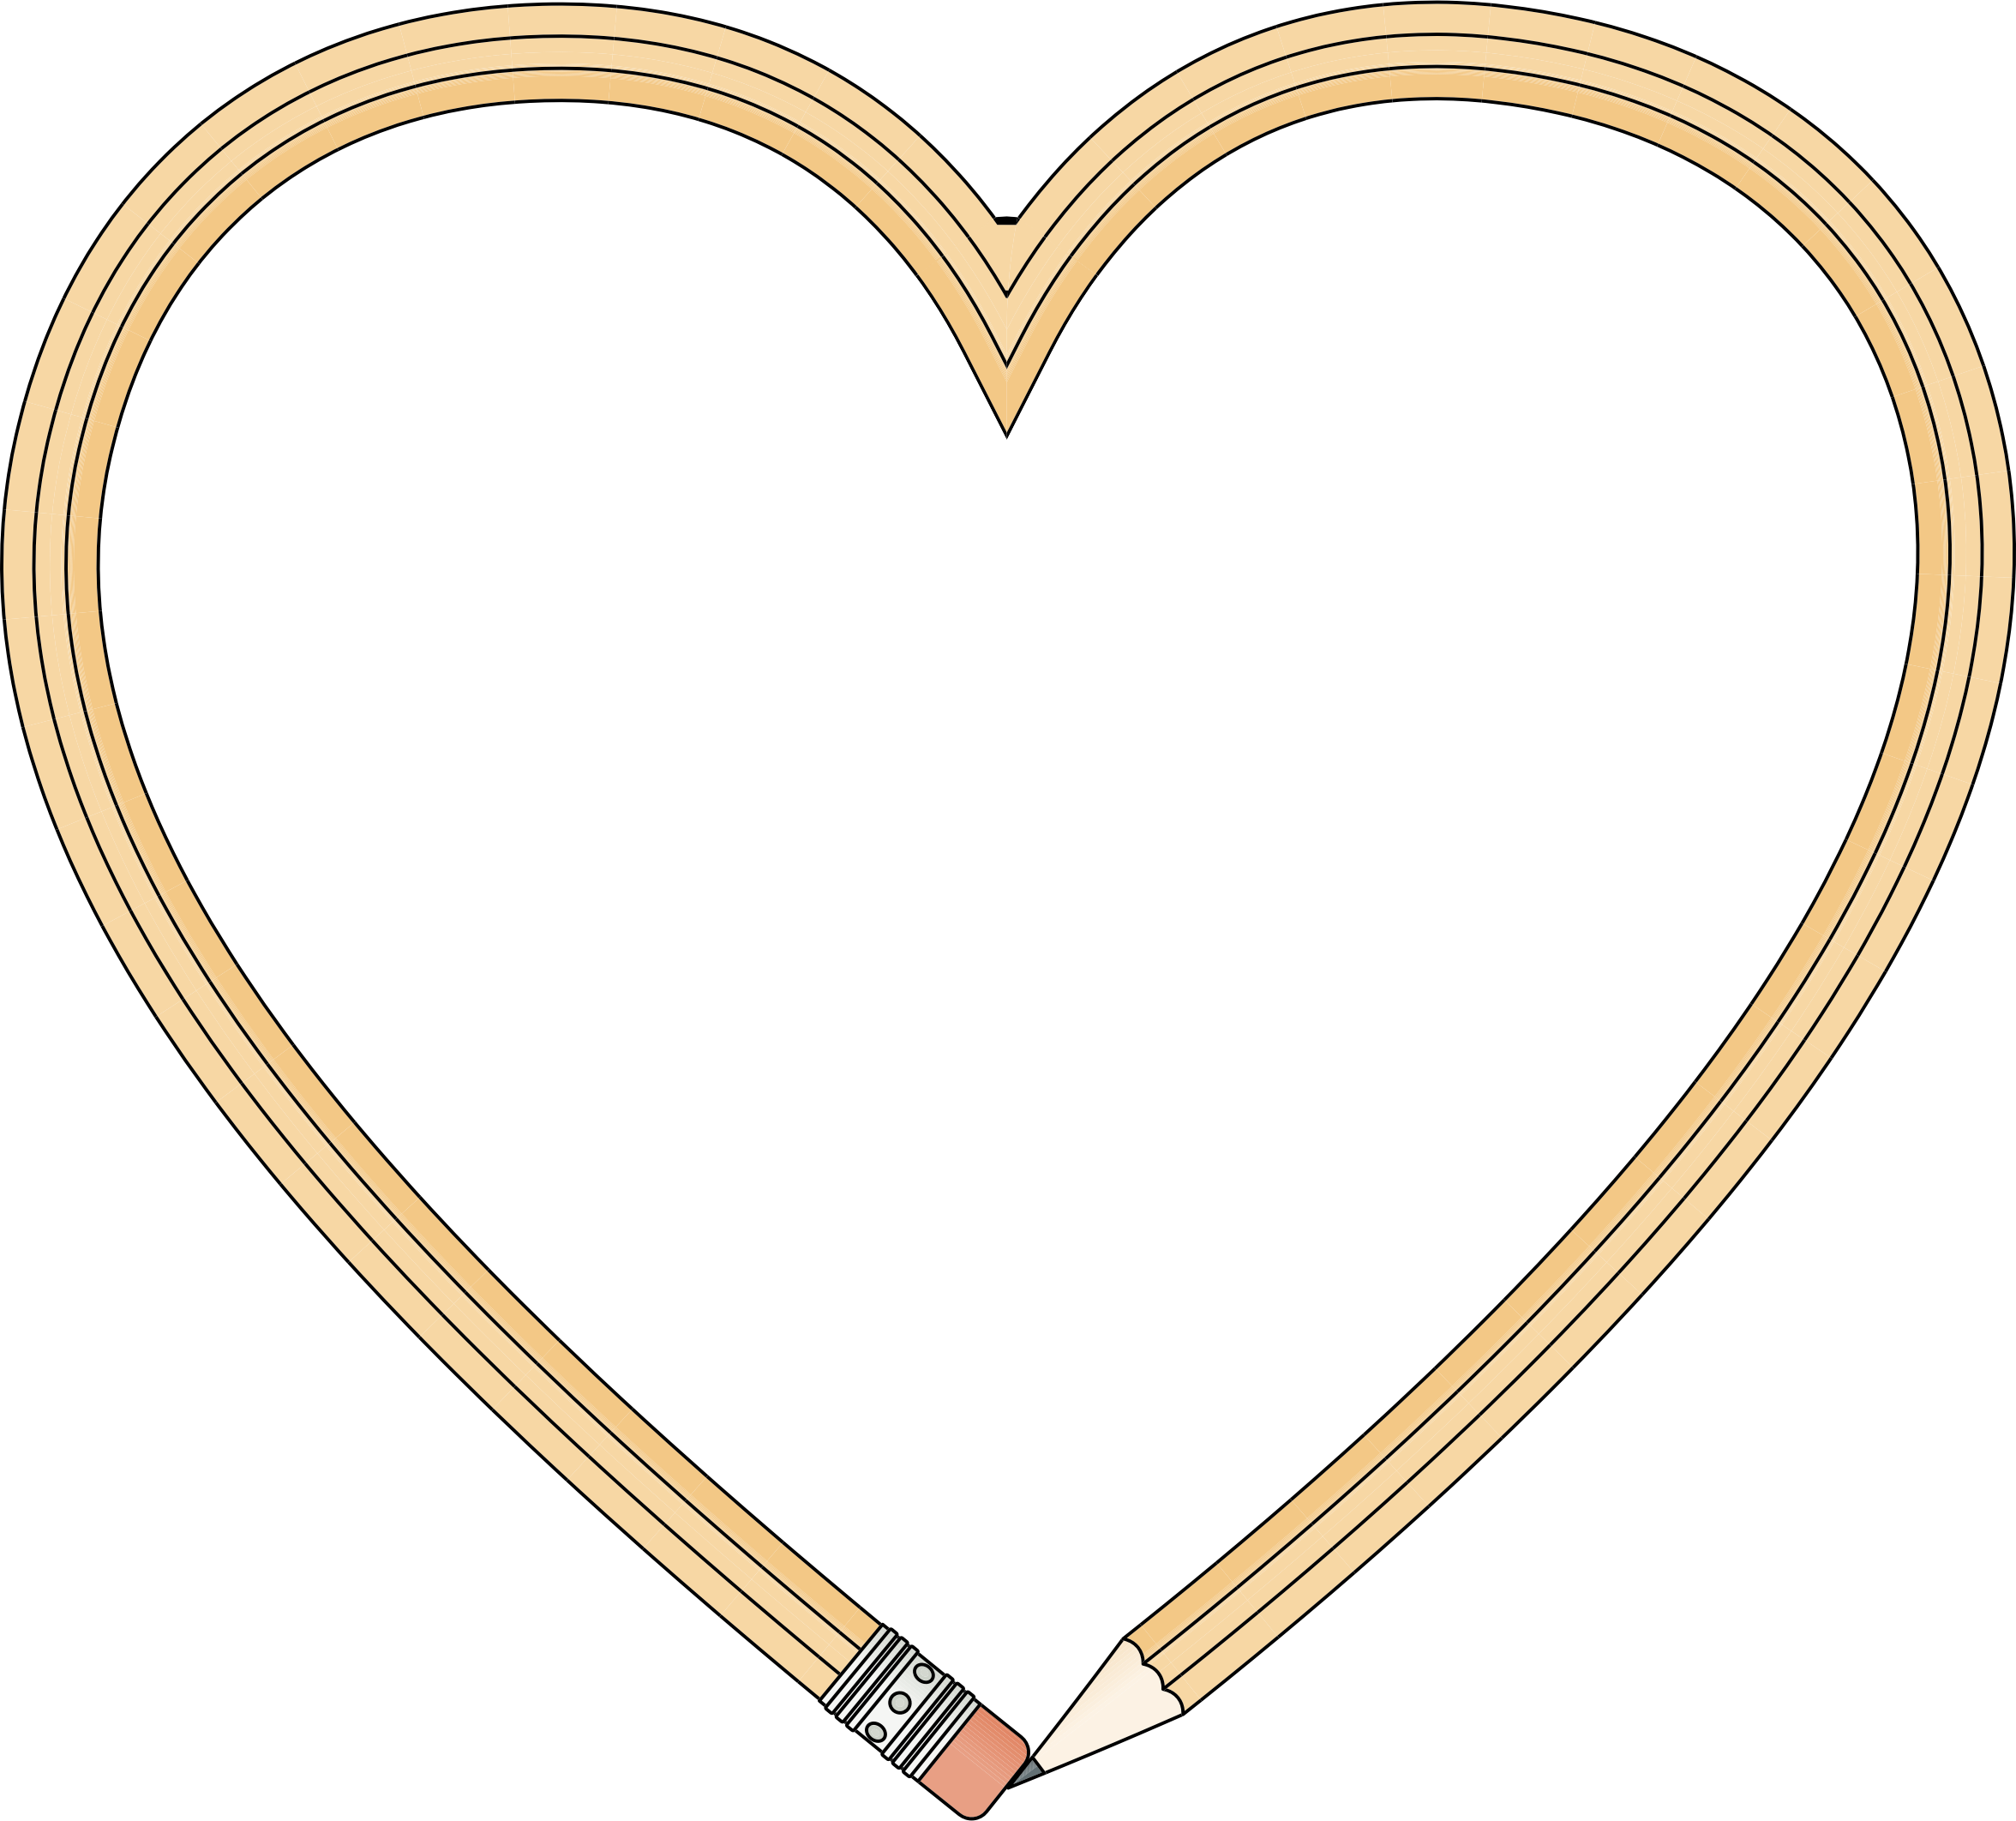 Pencil clipart heart Pencil Pencil Clipart Heart Heart